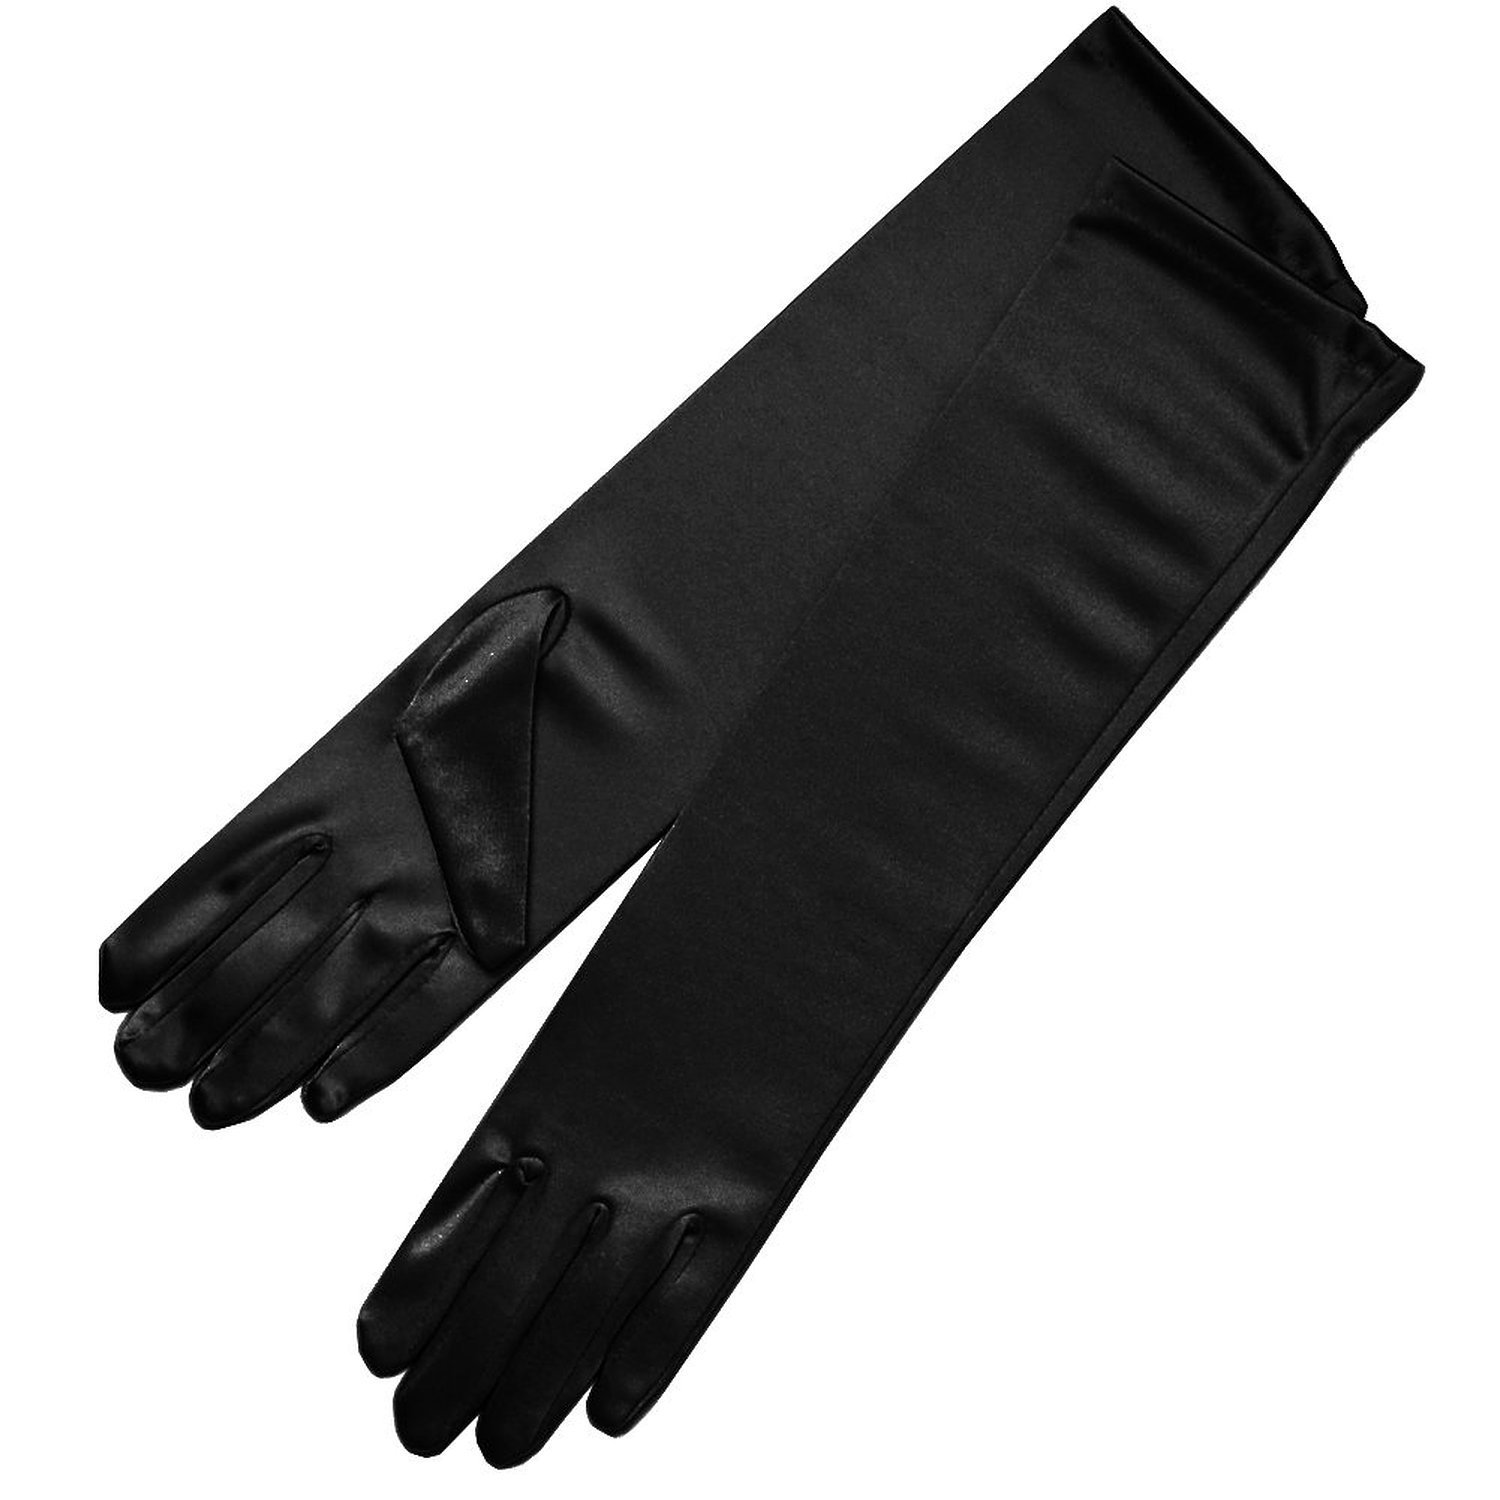 Ladies leather gloves navy - Zaza Bridal 15 5 Long Shiny Stretch Satin Dress Gloves Below The Elbow Length 8bl